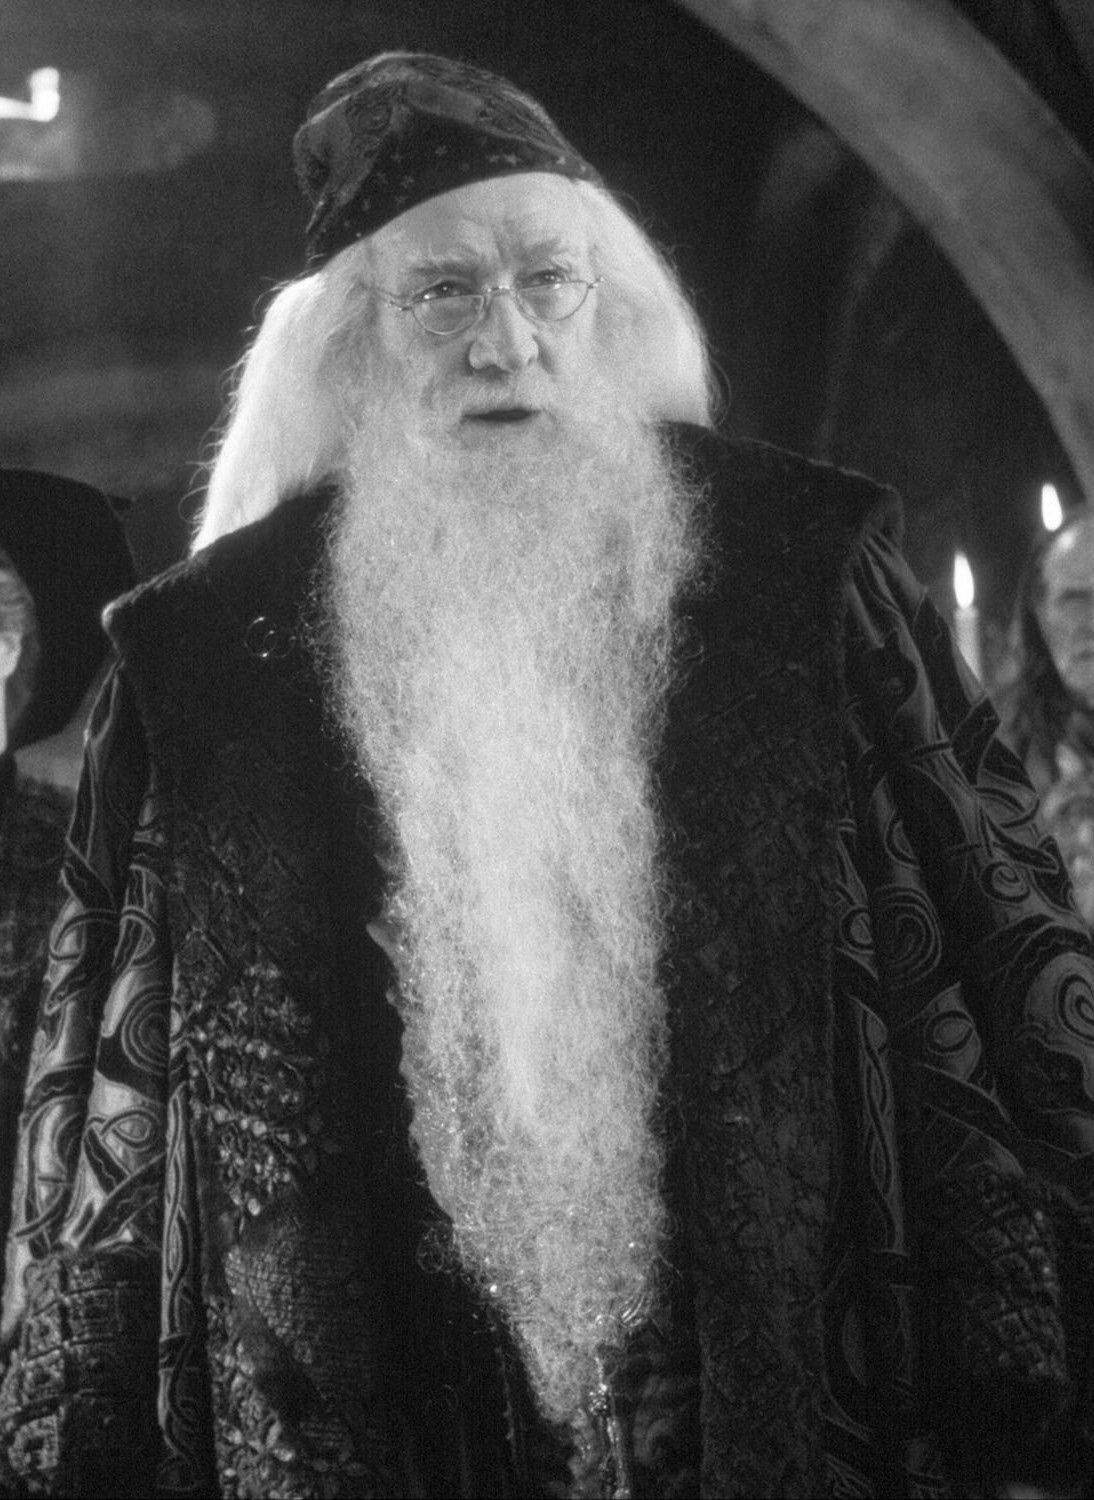 albus dumbledore as played by richard harris in films 1